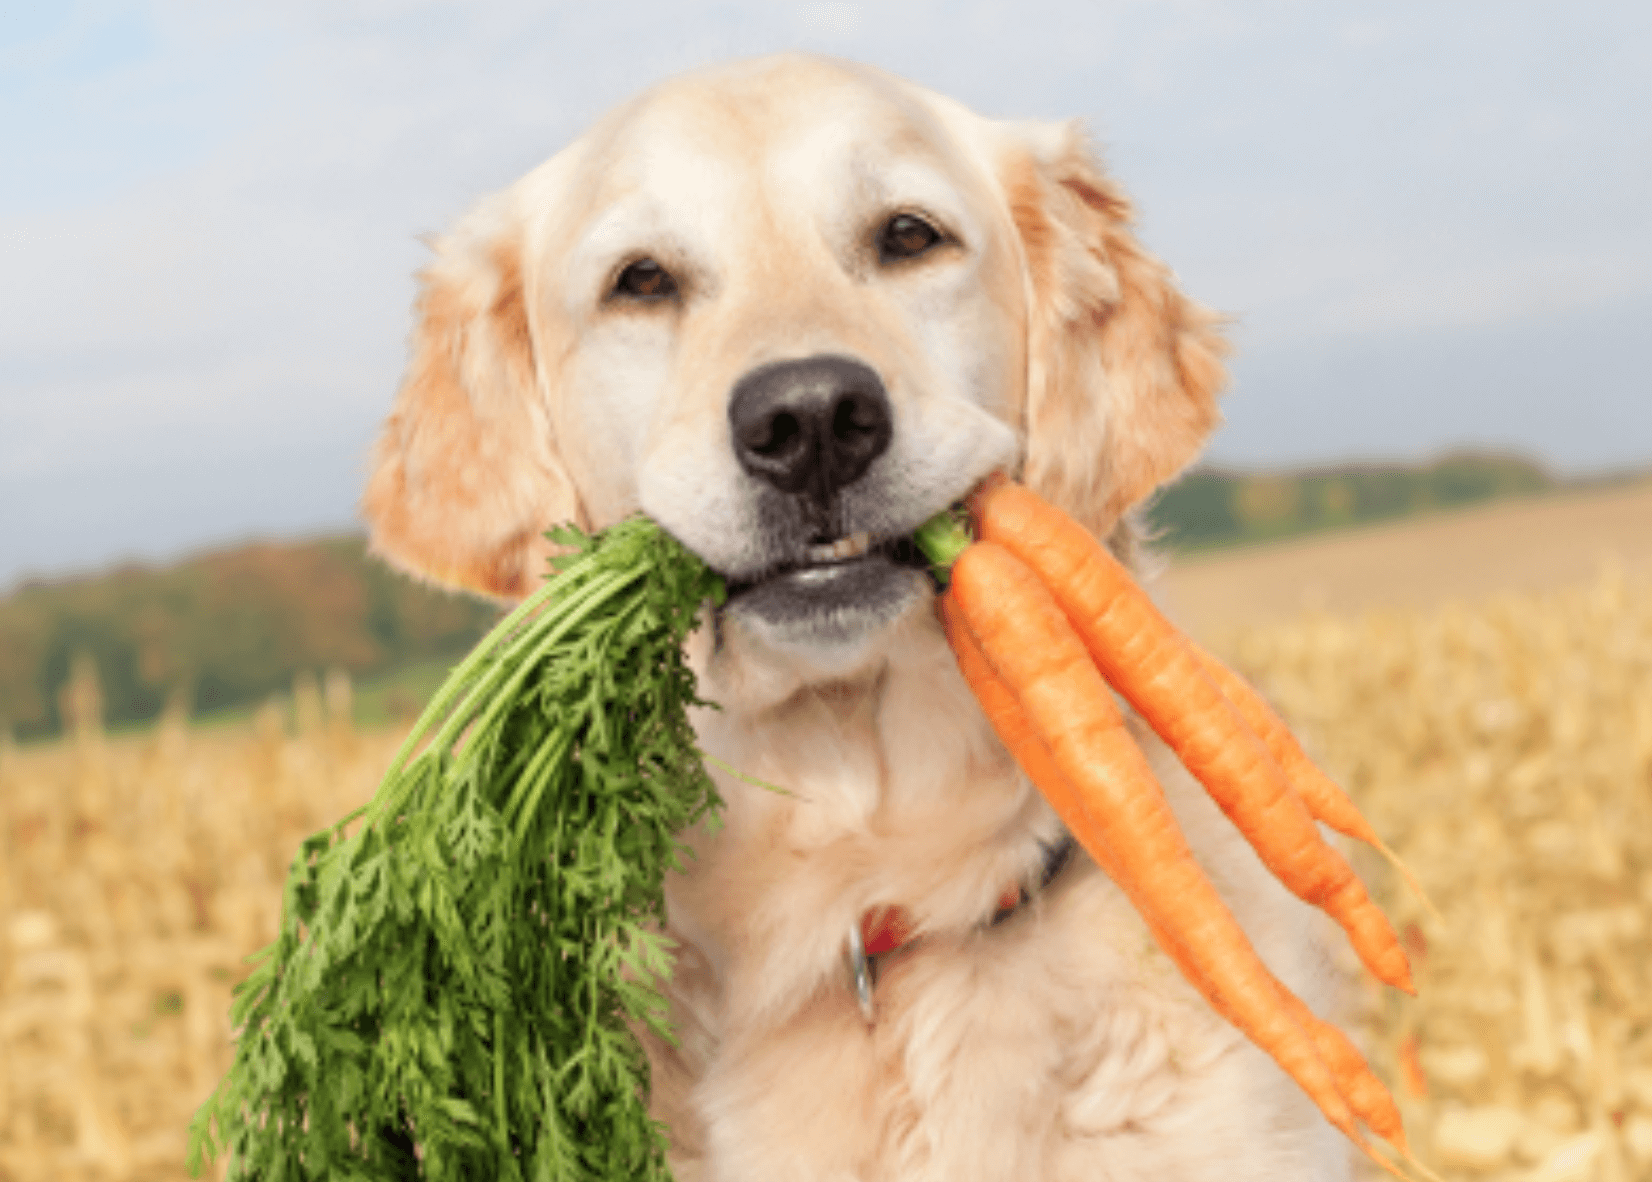 Is he eating the carrot or playing fetch with a farmer?